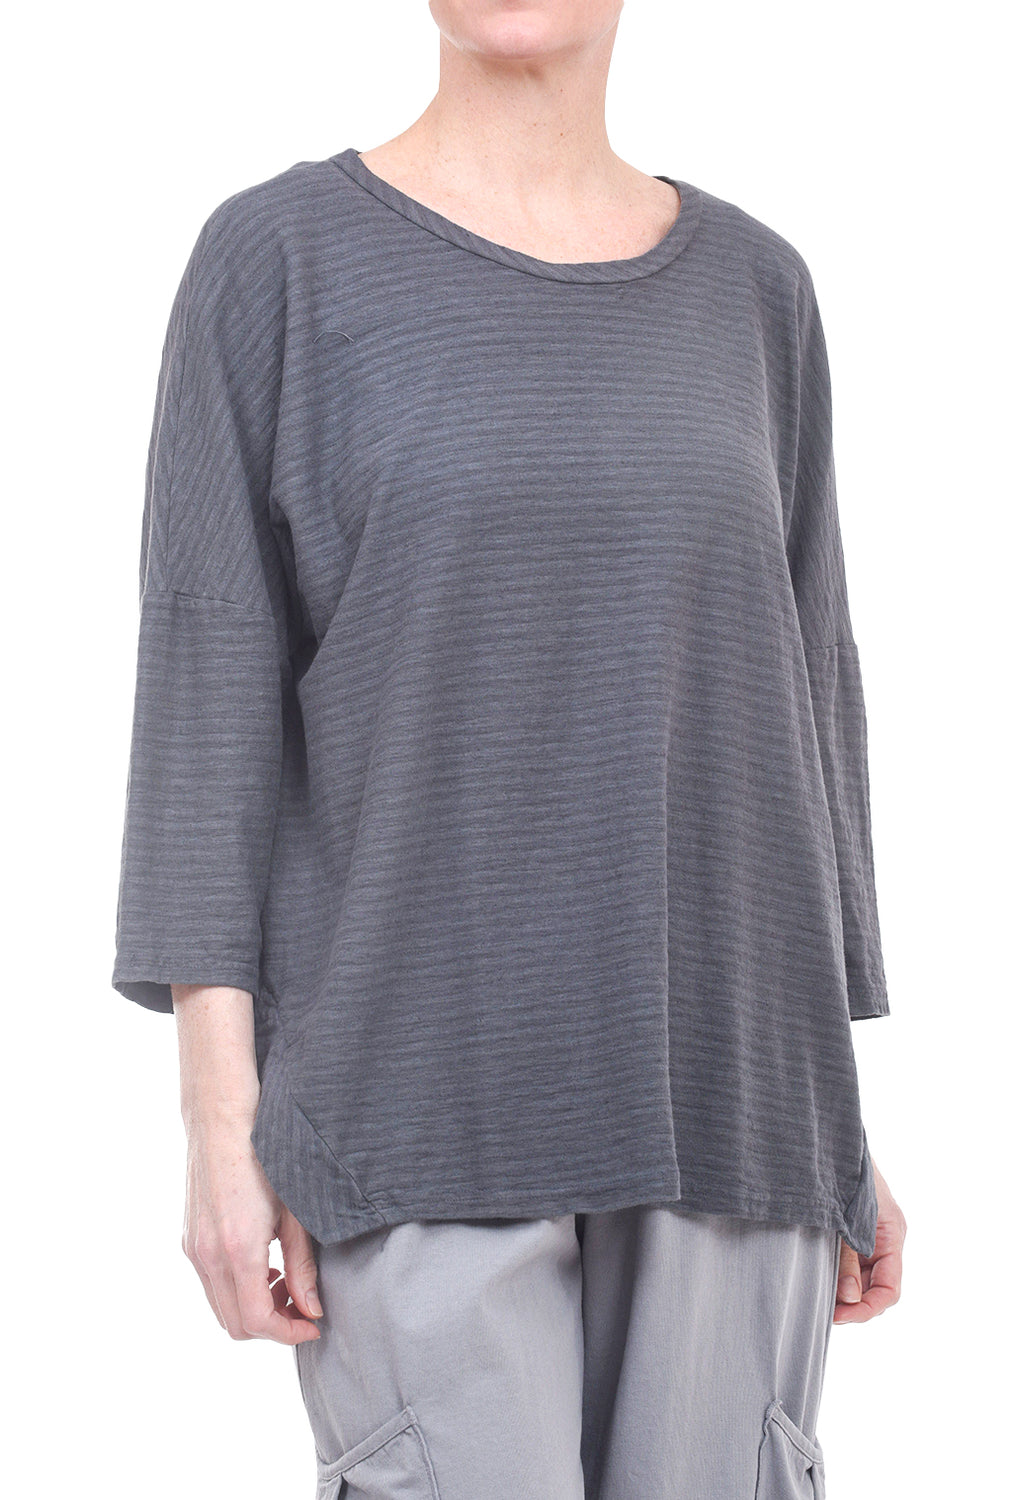 Cut Loose Linen Stripe Boxy Top, Iron Gray One Size Gray